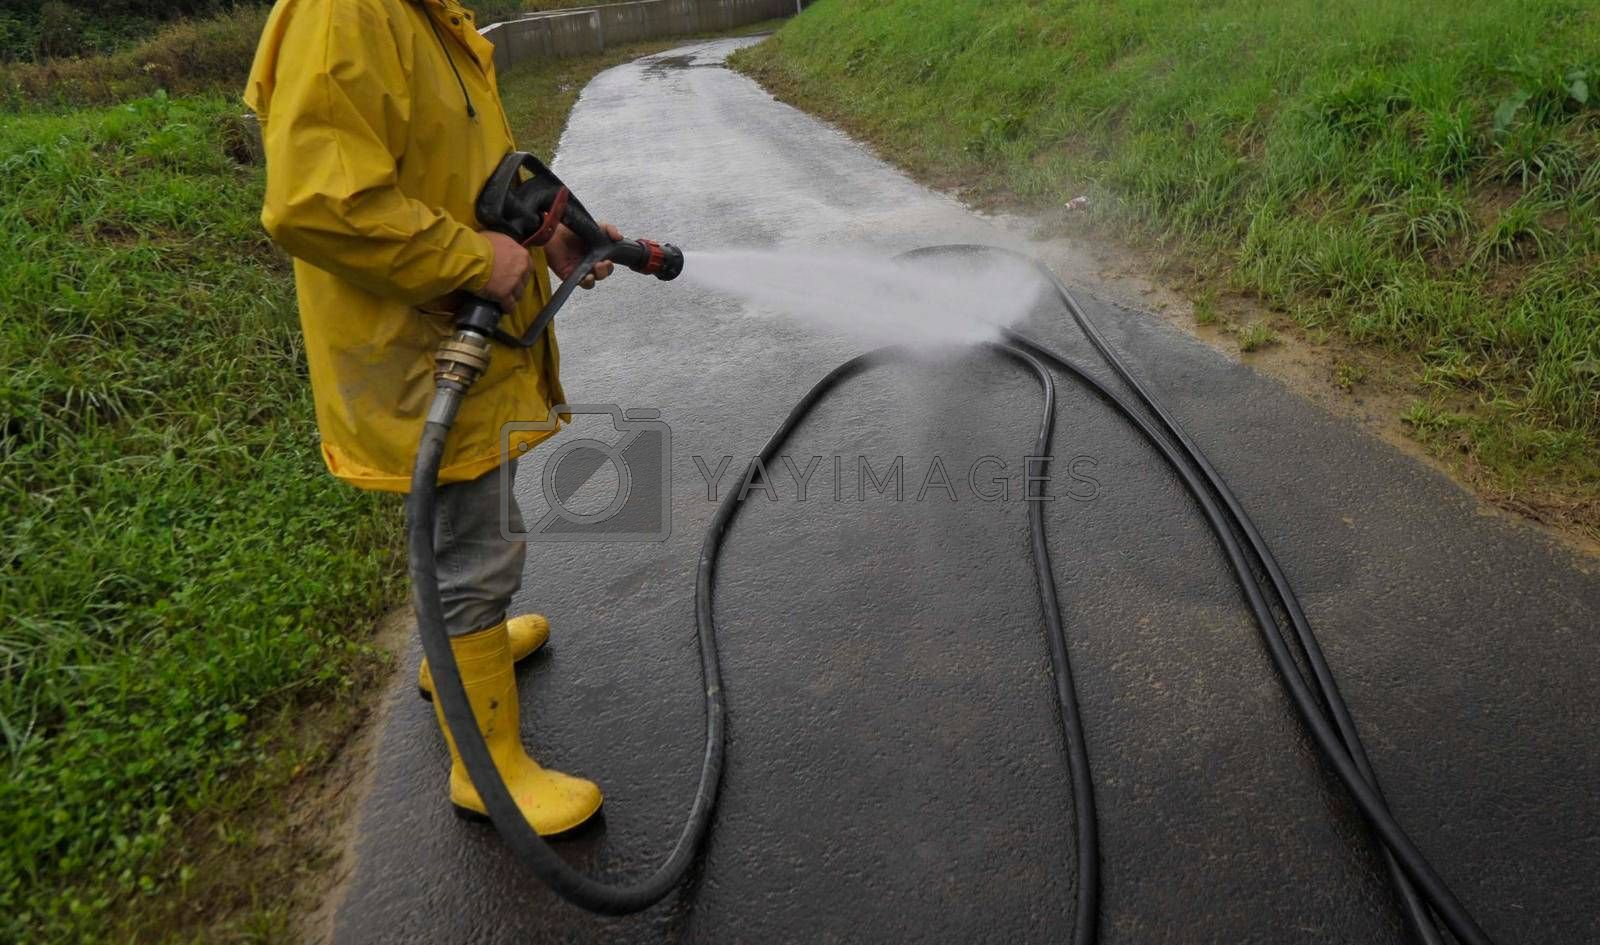 road cleaning and road maintenance as part of public service